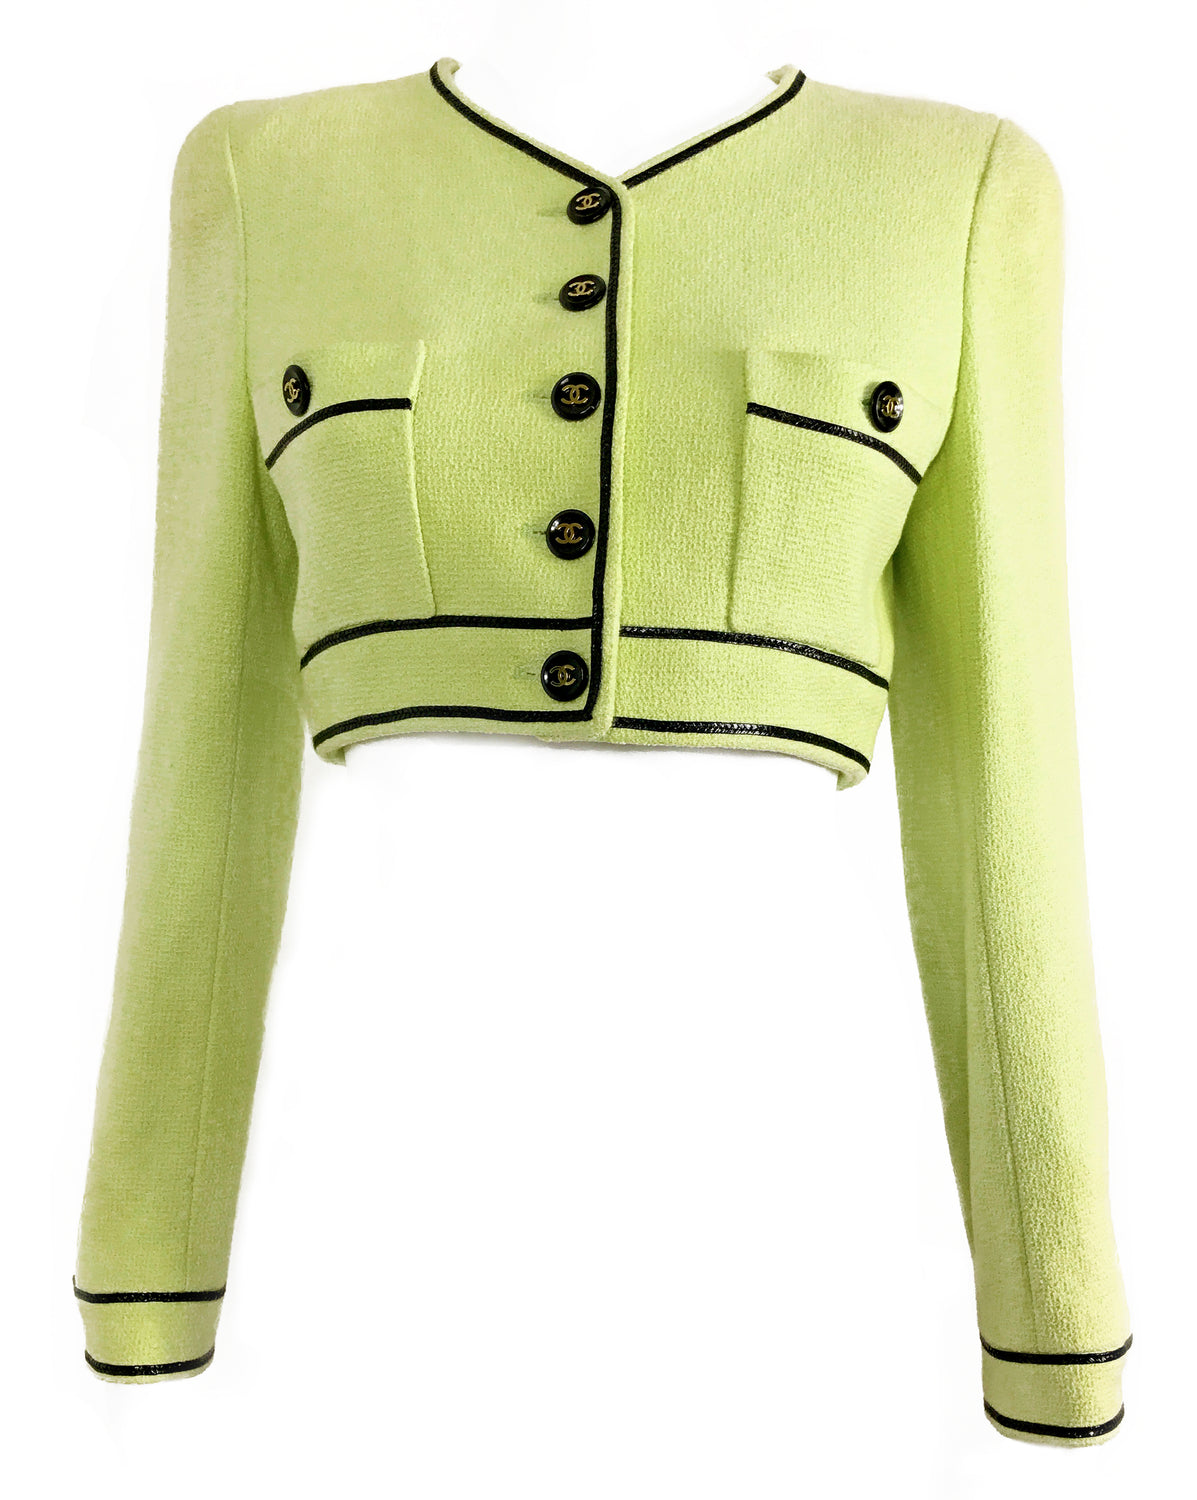 FRUIT Vintage Chanel Spring Summer 1995 Green Boucle Cropped Jacket Karl Lagerfeld Claudia Schiffer